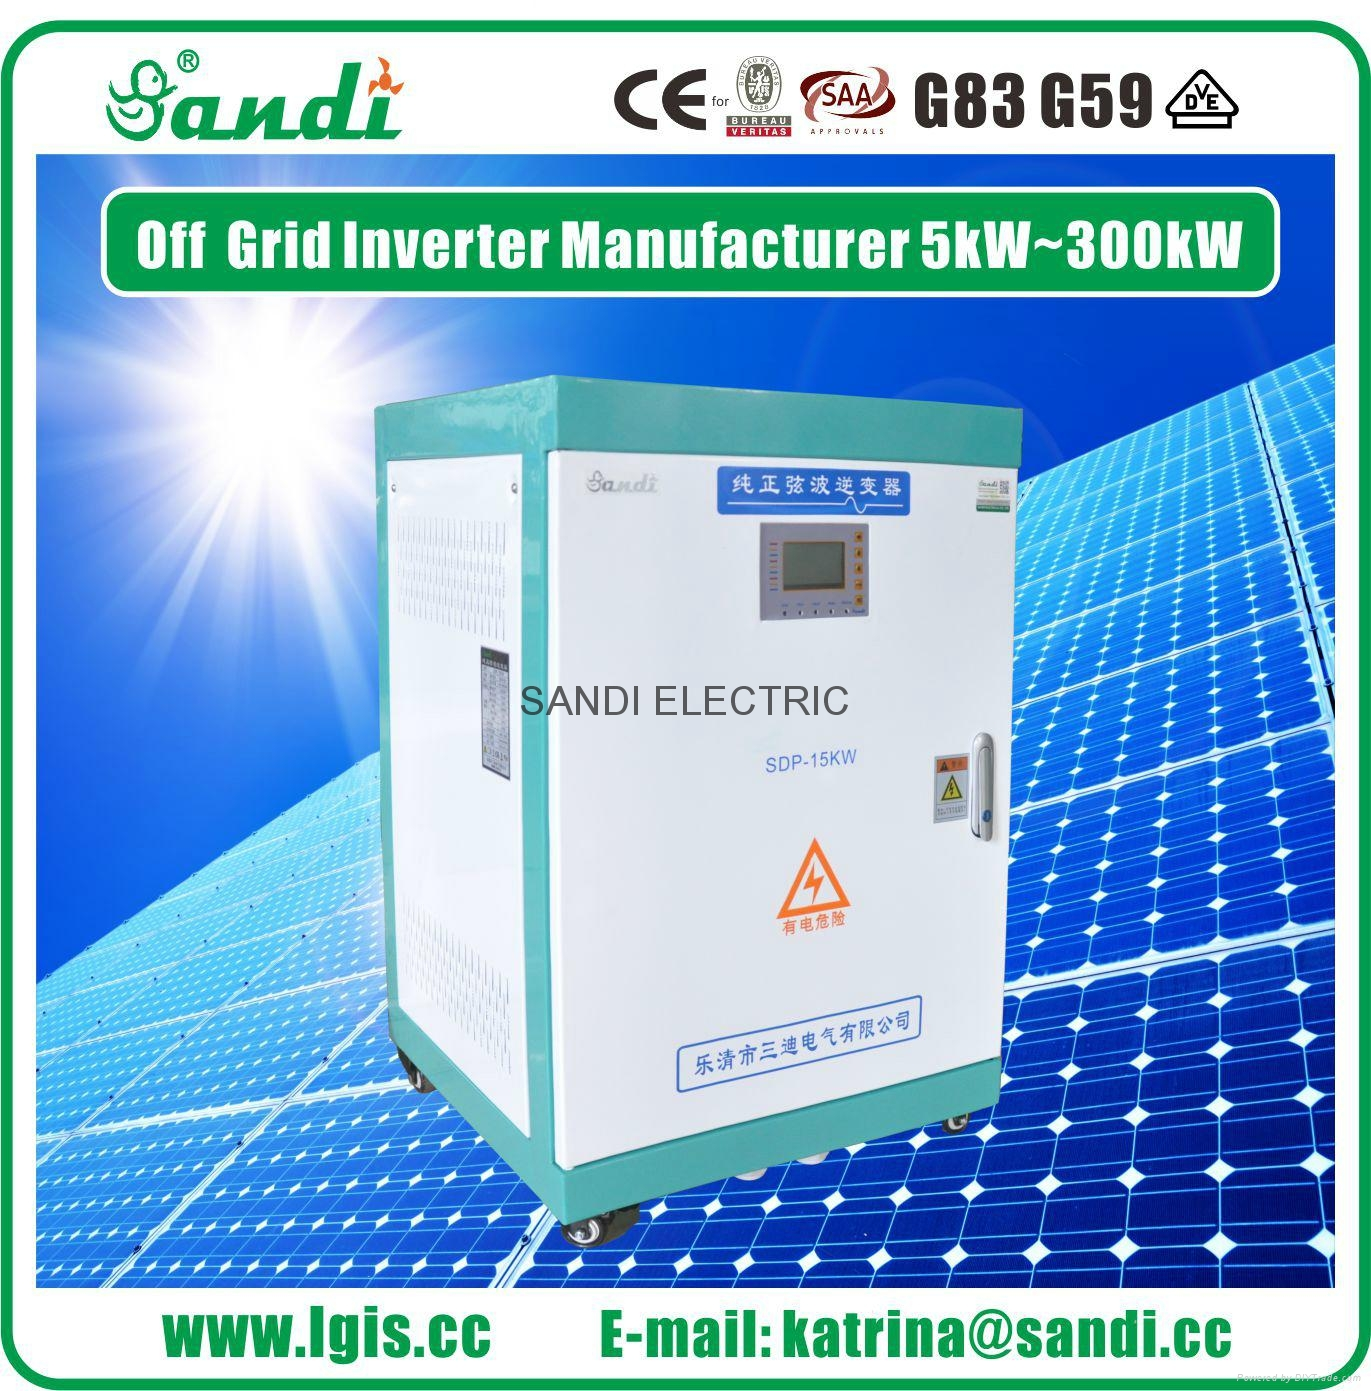 Split Phase Inverter 15kw Off Grid Solar Inverter from SANDI